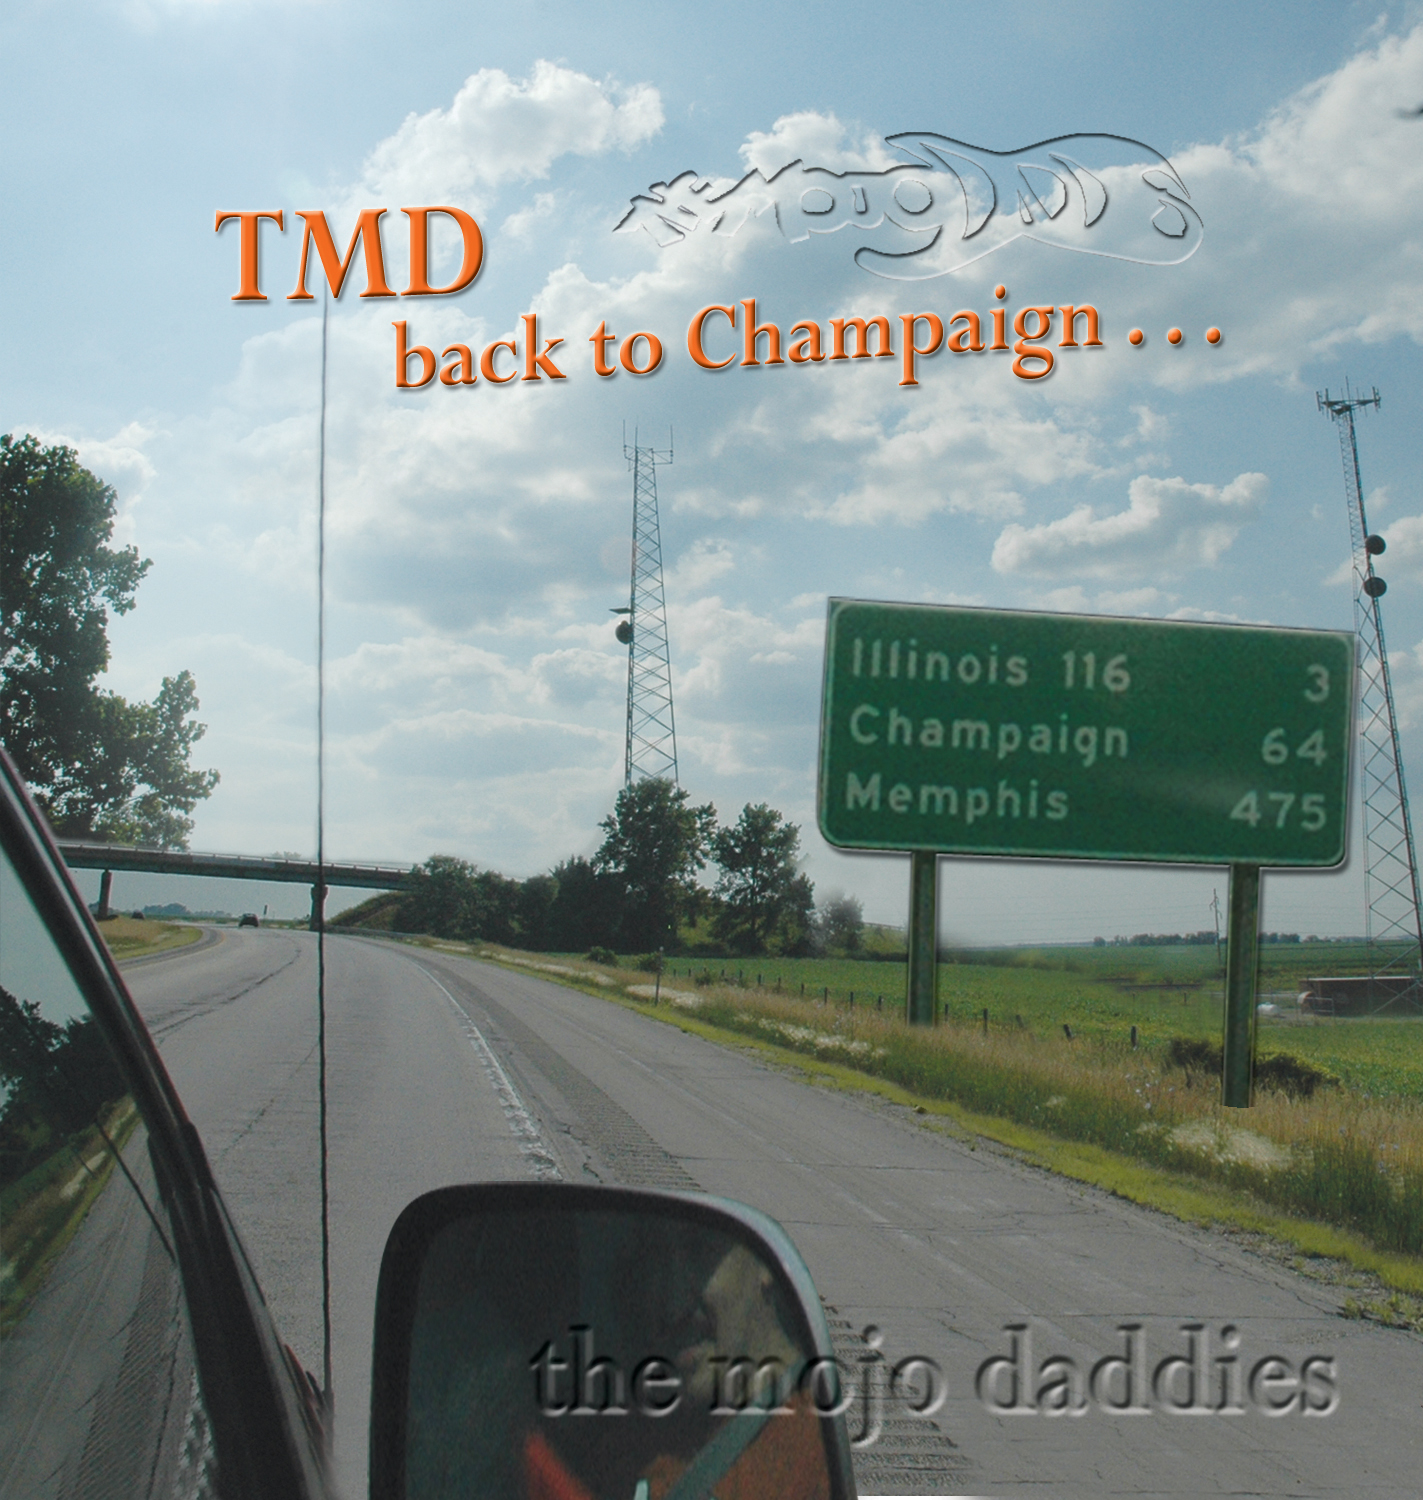 Back to Champaign cover art by Tracey Campbell